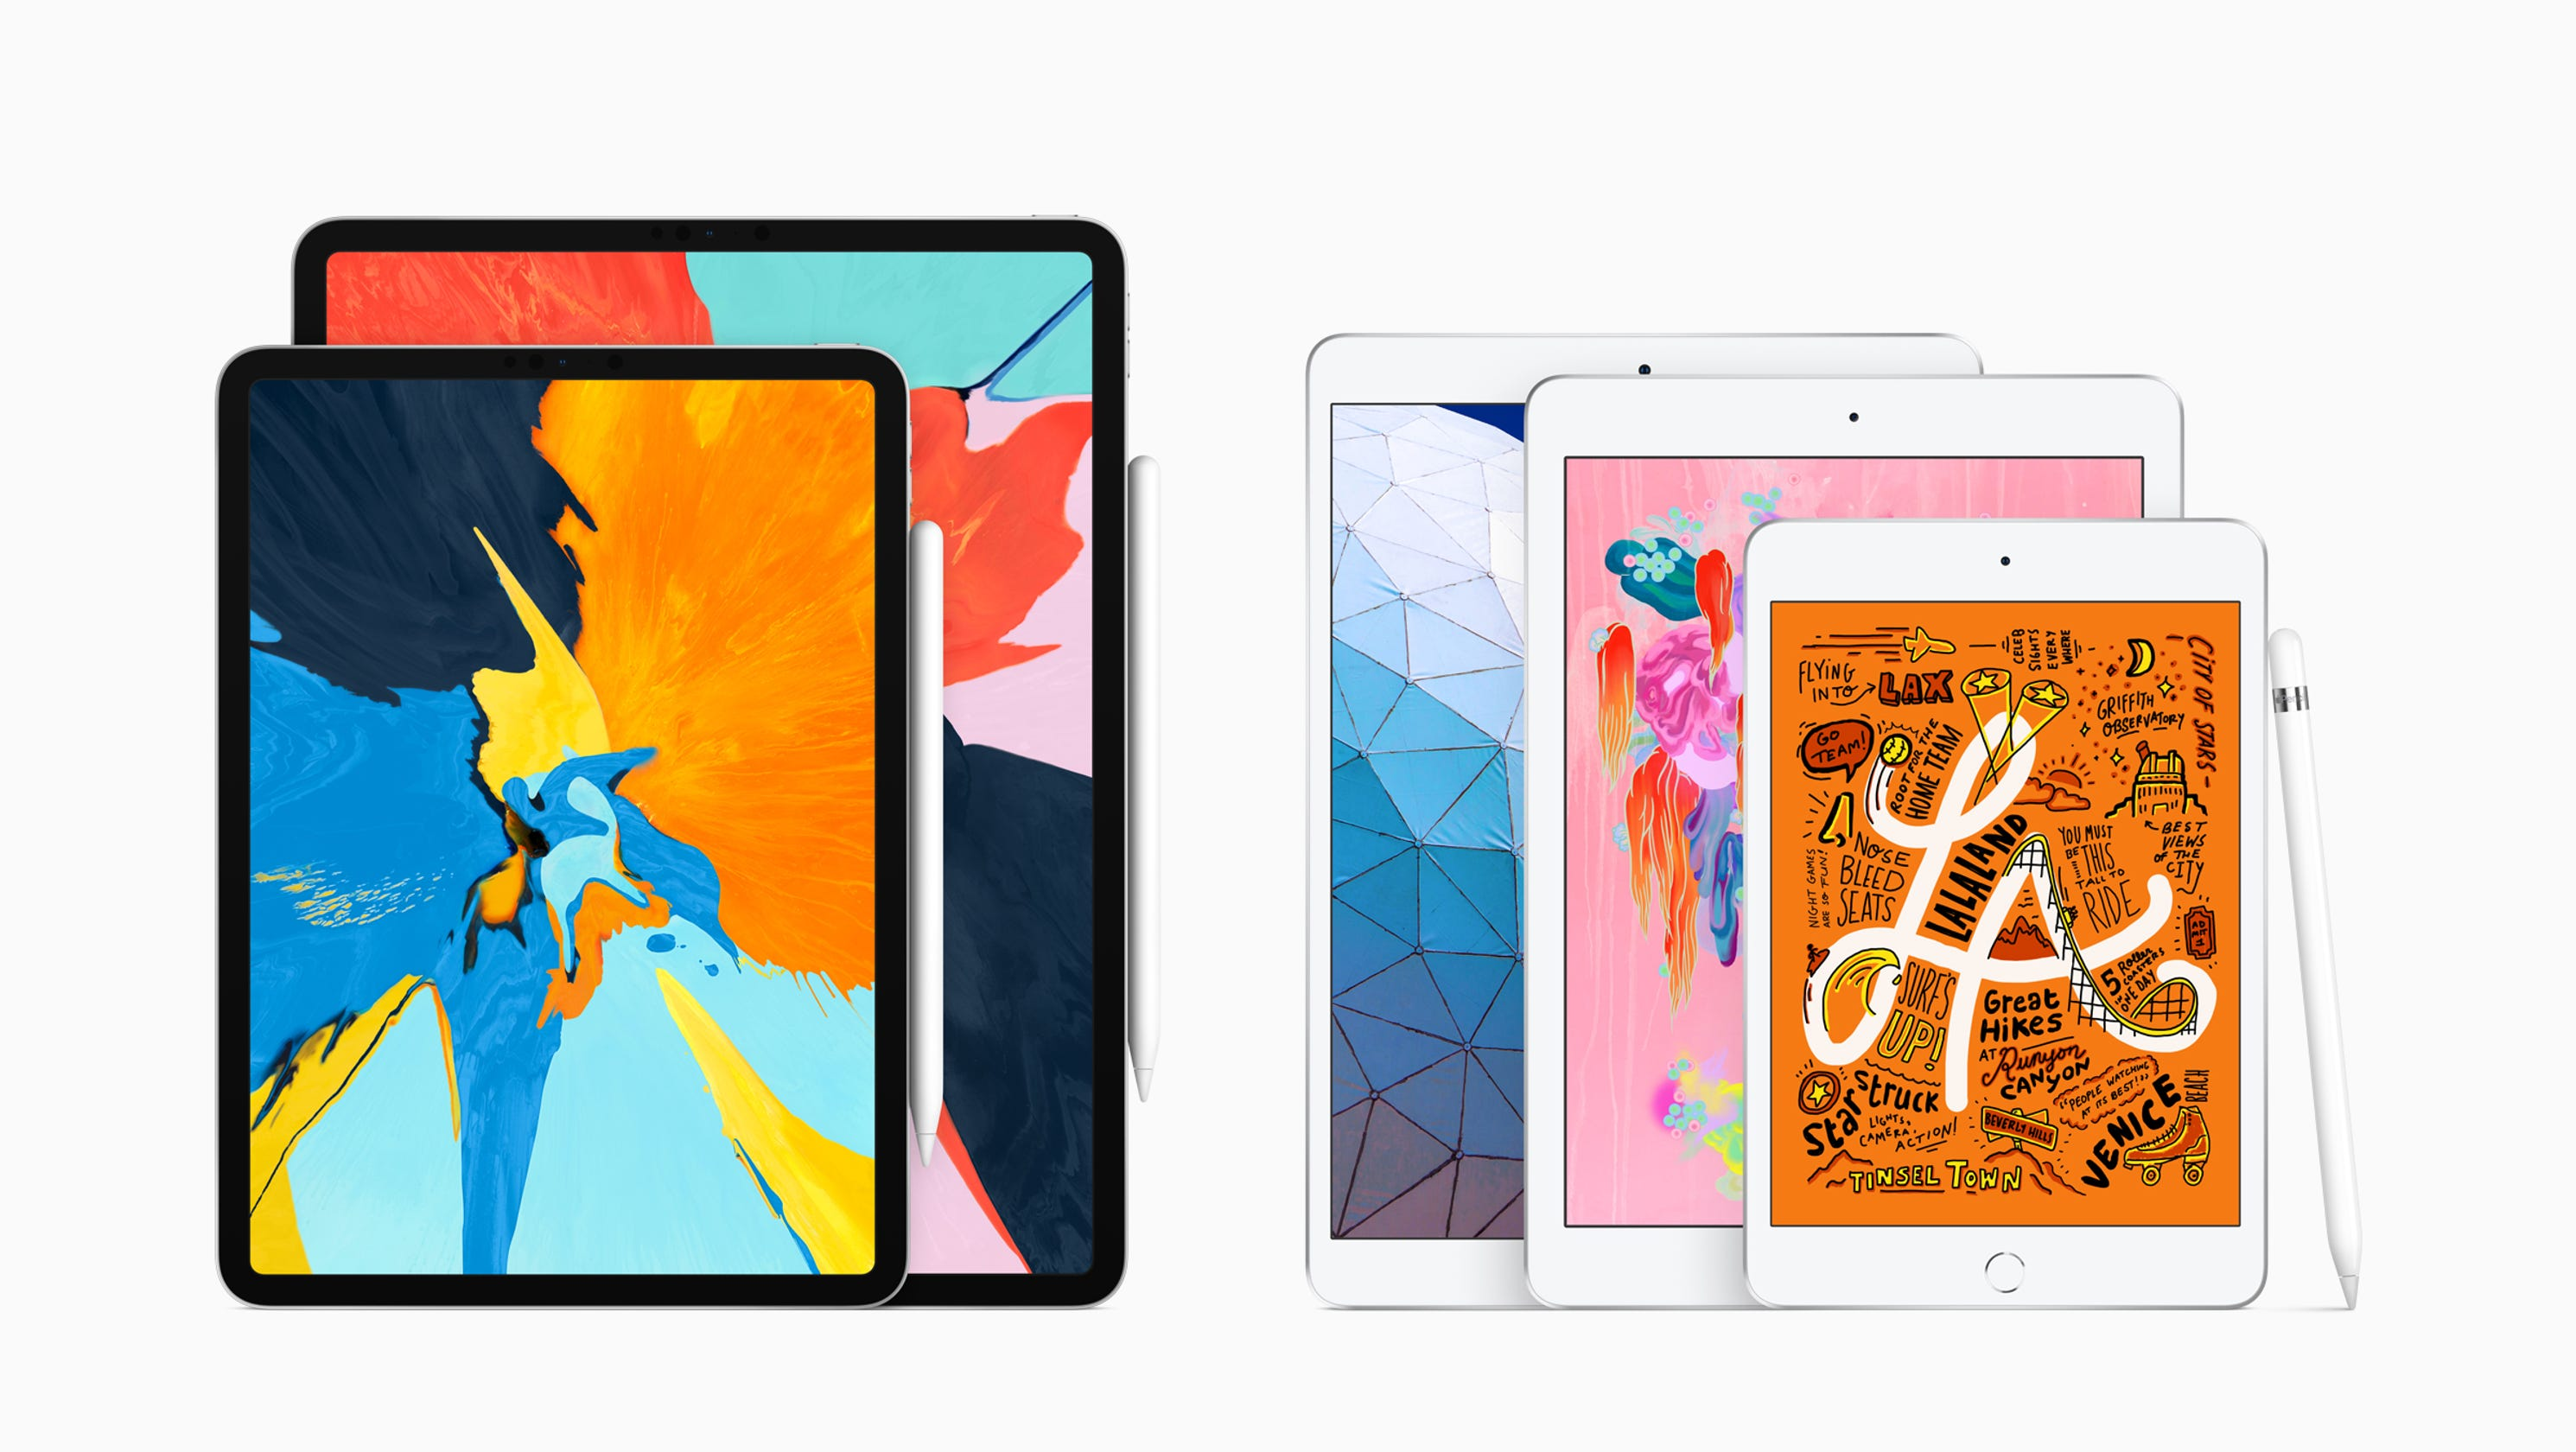 iPad mini review: Is Apple's small tablet still a smart buy?